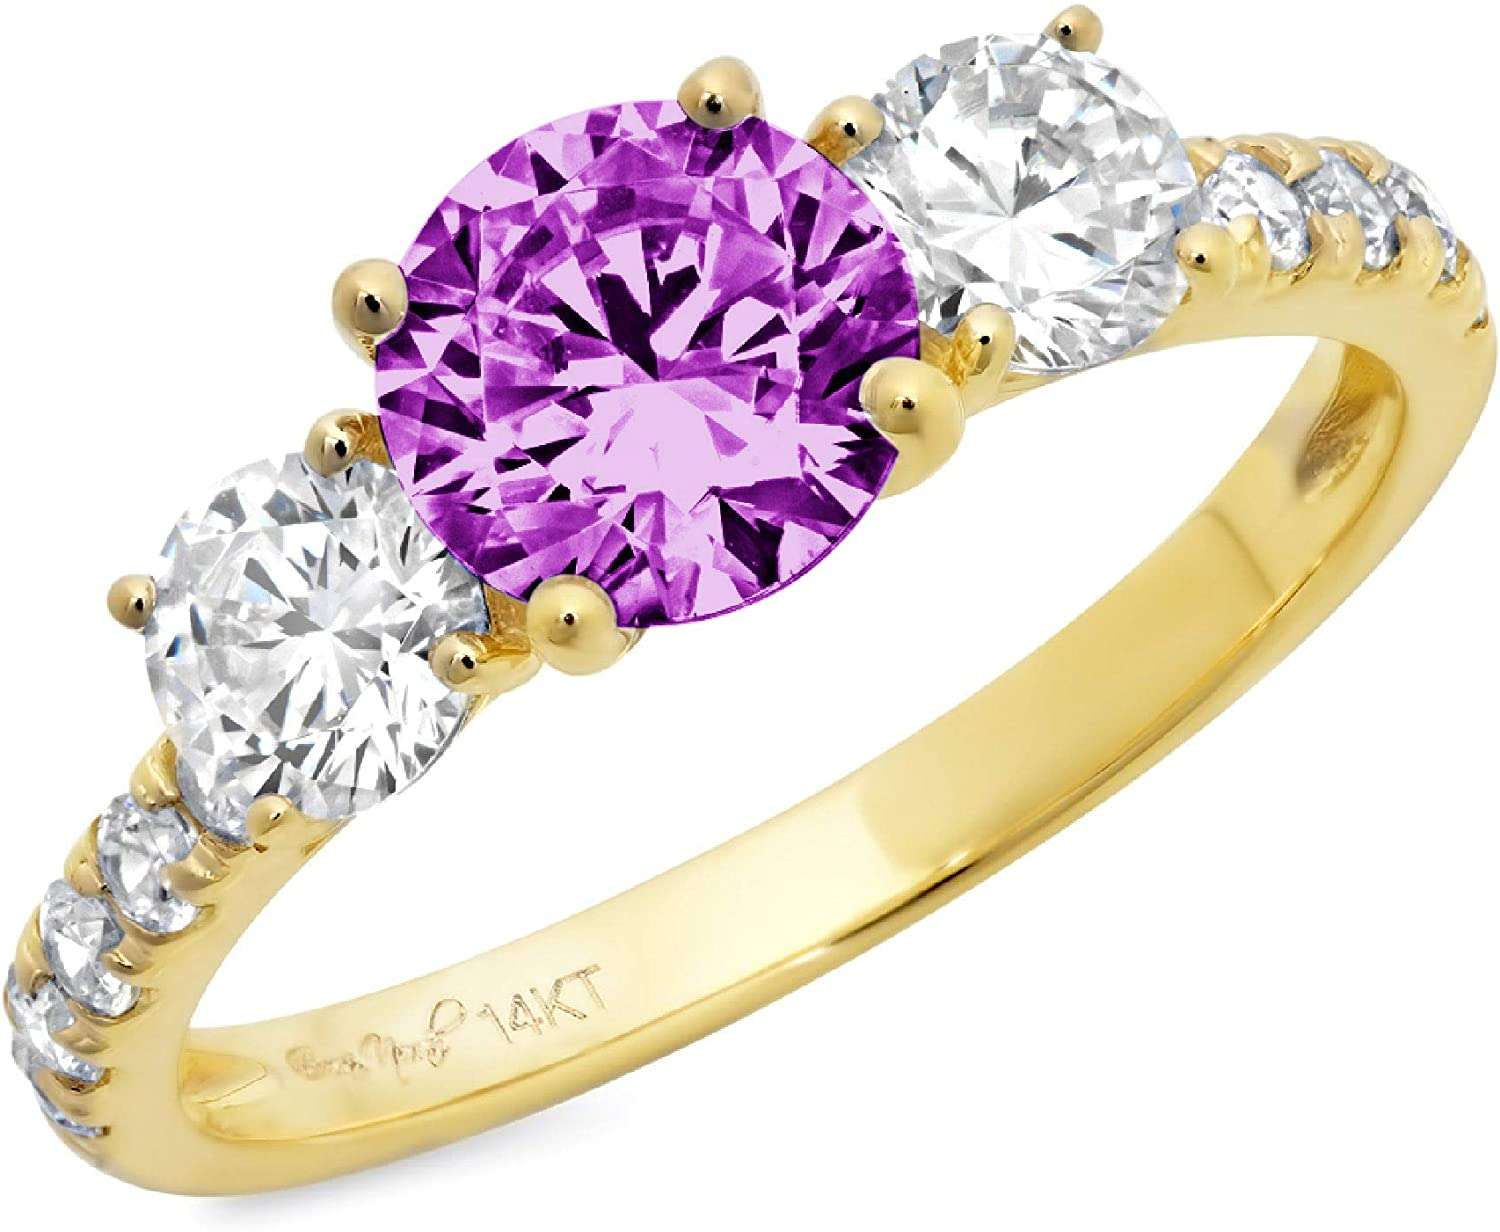 1.95 ct Brilliant Round Cut Solitaire 3 stone With Accent Flawless Ideal VVS1 Simulated Alexandrite Ideal Engagement Promise Statement Anniversary Bridal Wedding Designer Ring 14k Yellow Gold